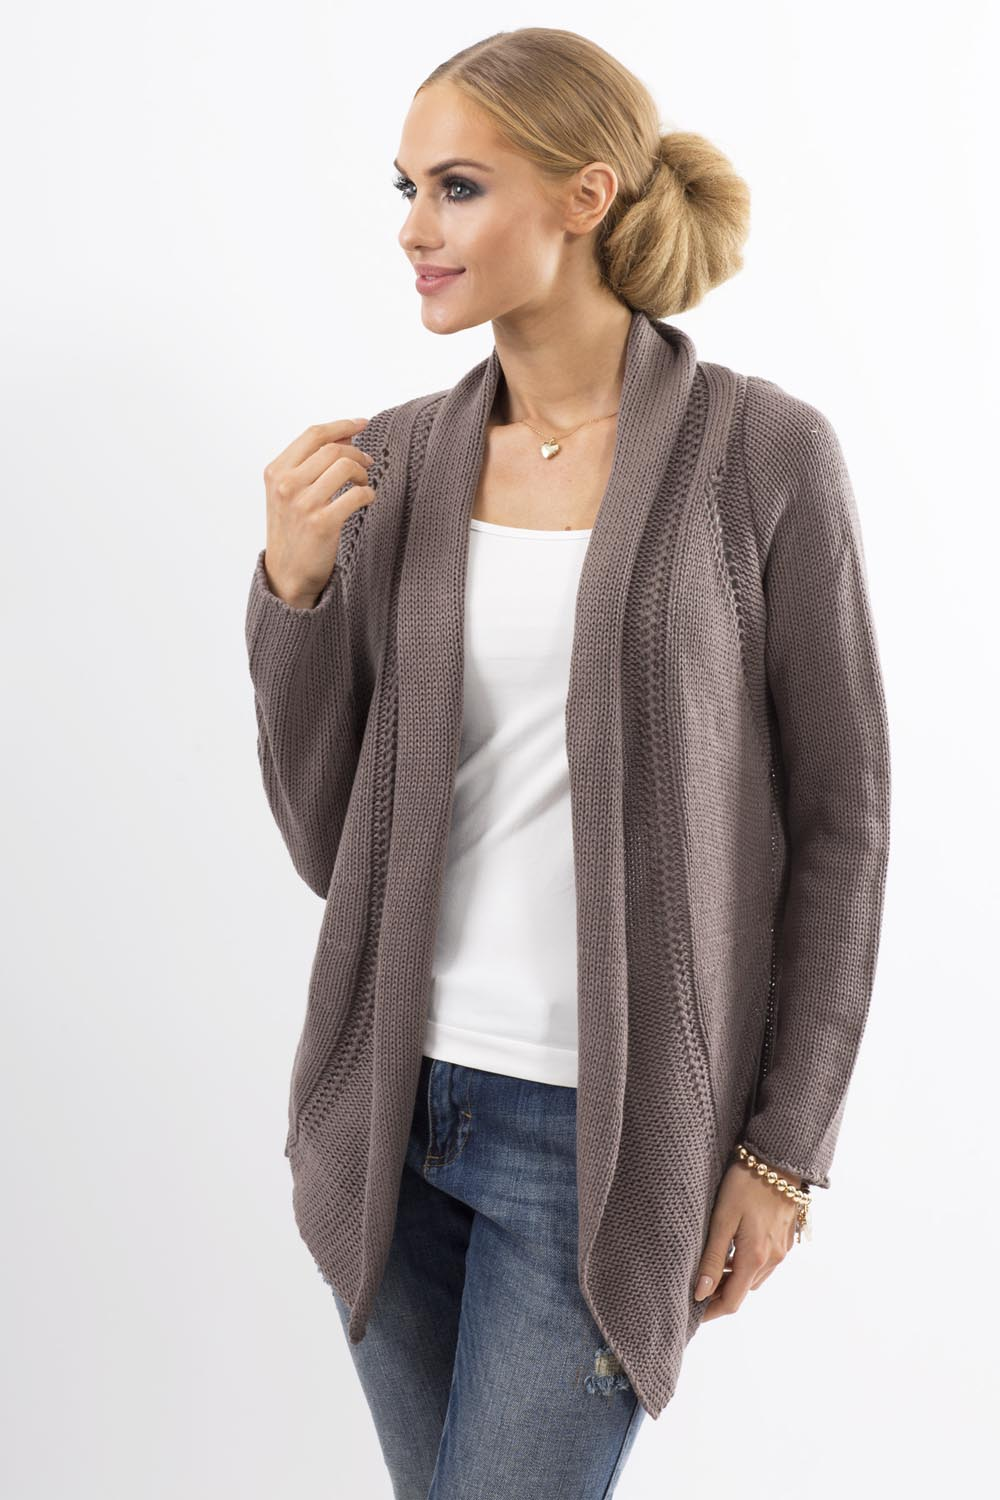 Knitting Pattern Cardigan Shawl Collar : Cappuccino Shawl Collar Ladies Cardigan with Eyelet Knit ...